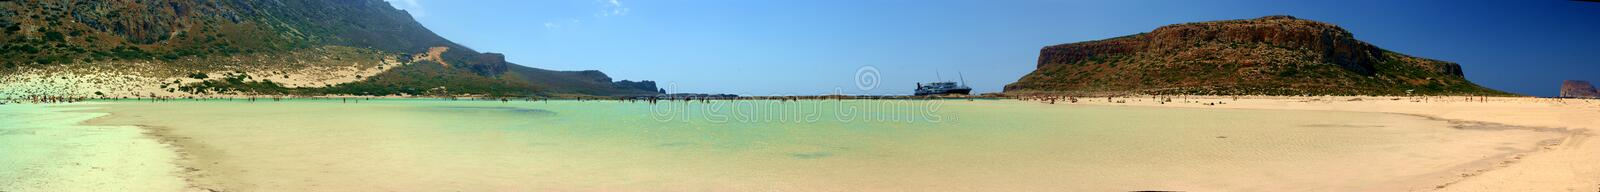 Beaches Lagoon stock photo